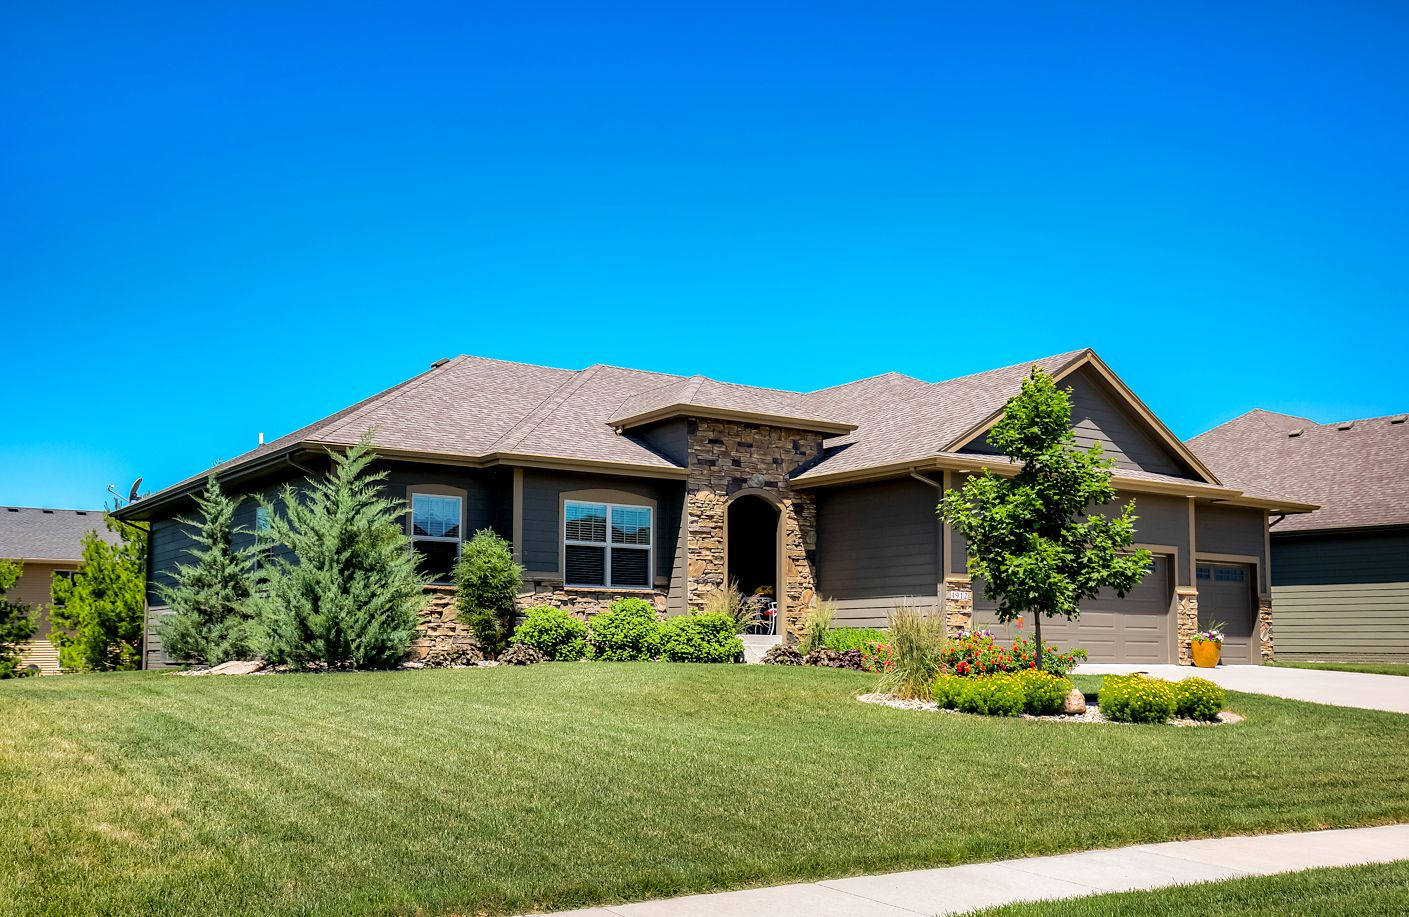 Sold 4912 Ne Rio Drive Ankeny Iowa 50021 Residential Air Conditioning Custom Cabinetry House Prices